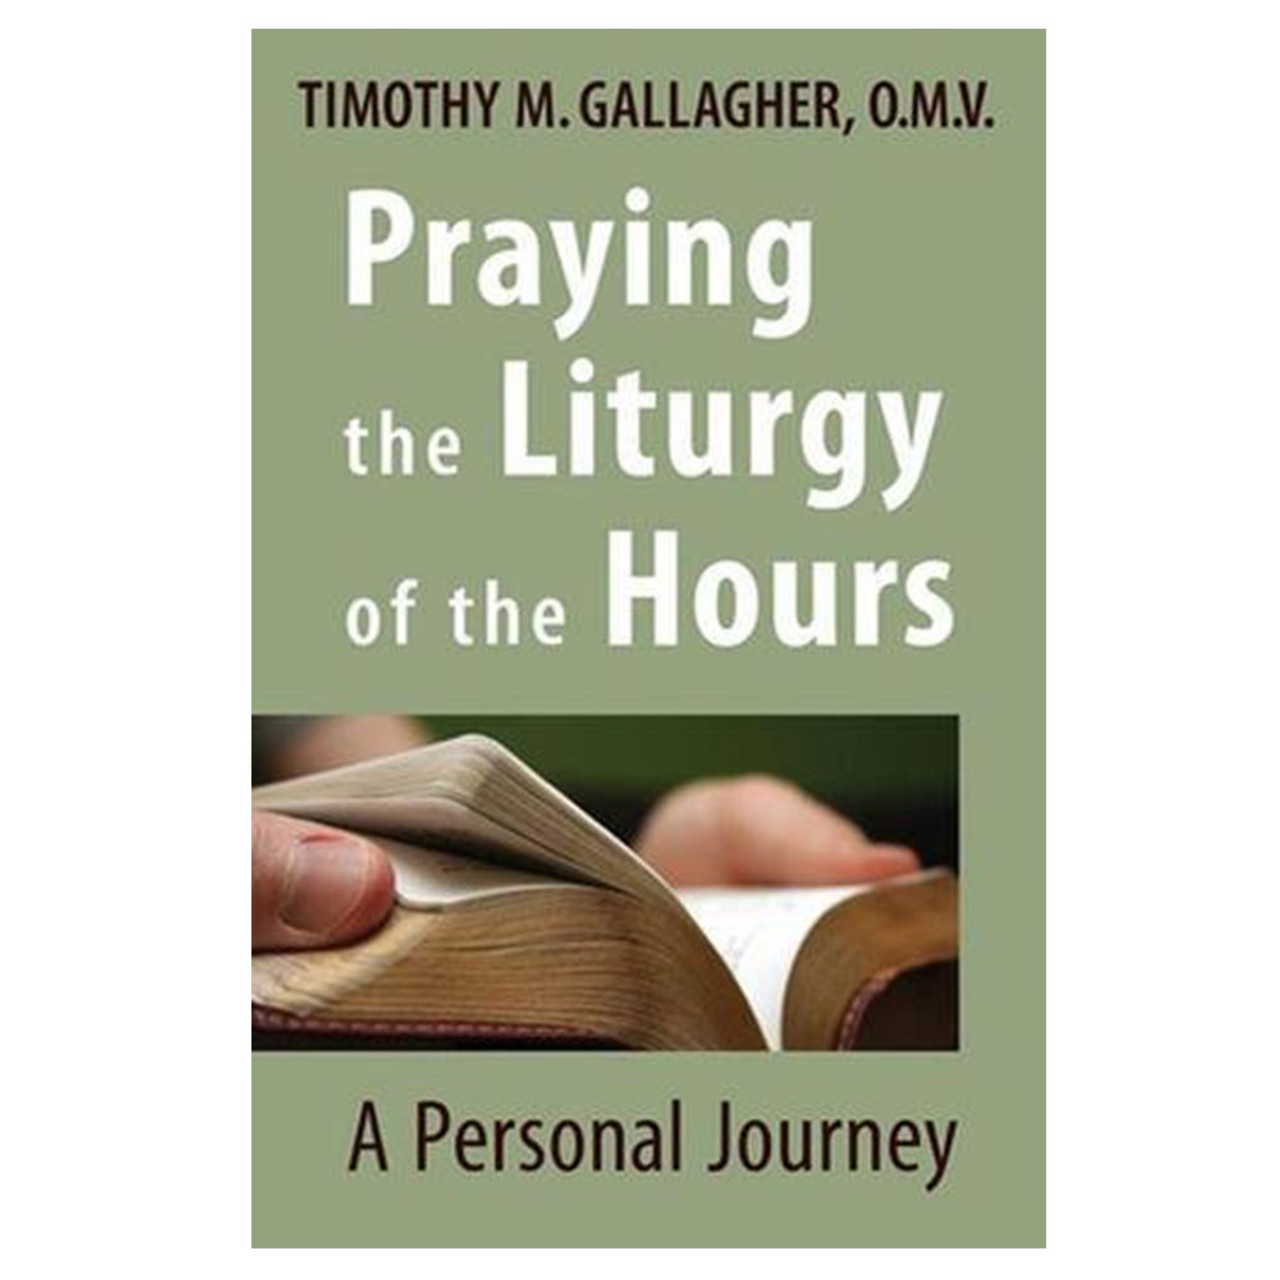 Praying Liturgy of Hours Gallagher, Timothy